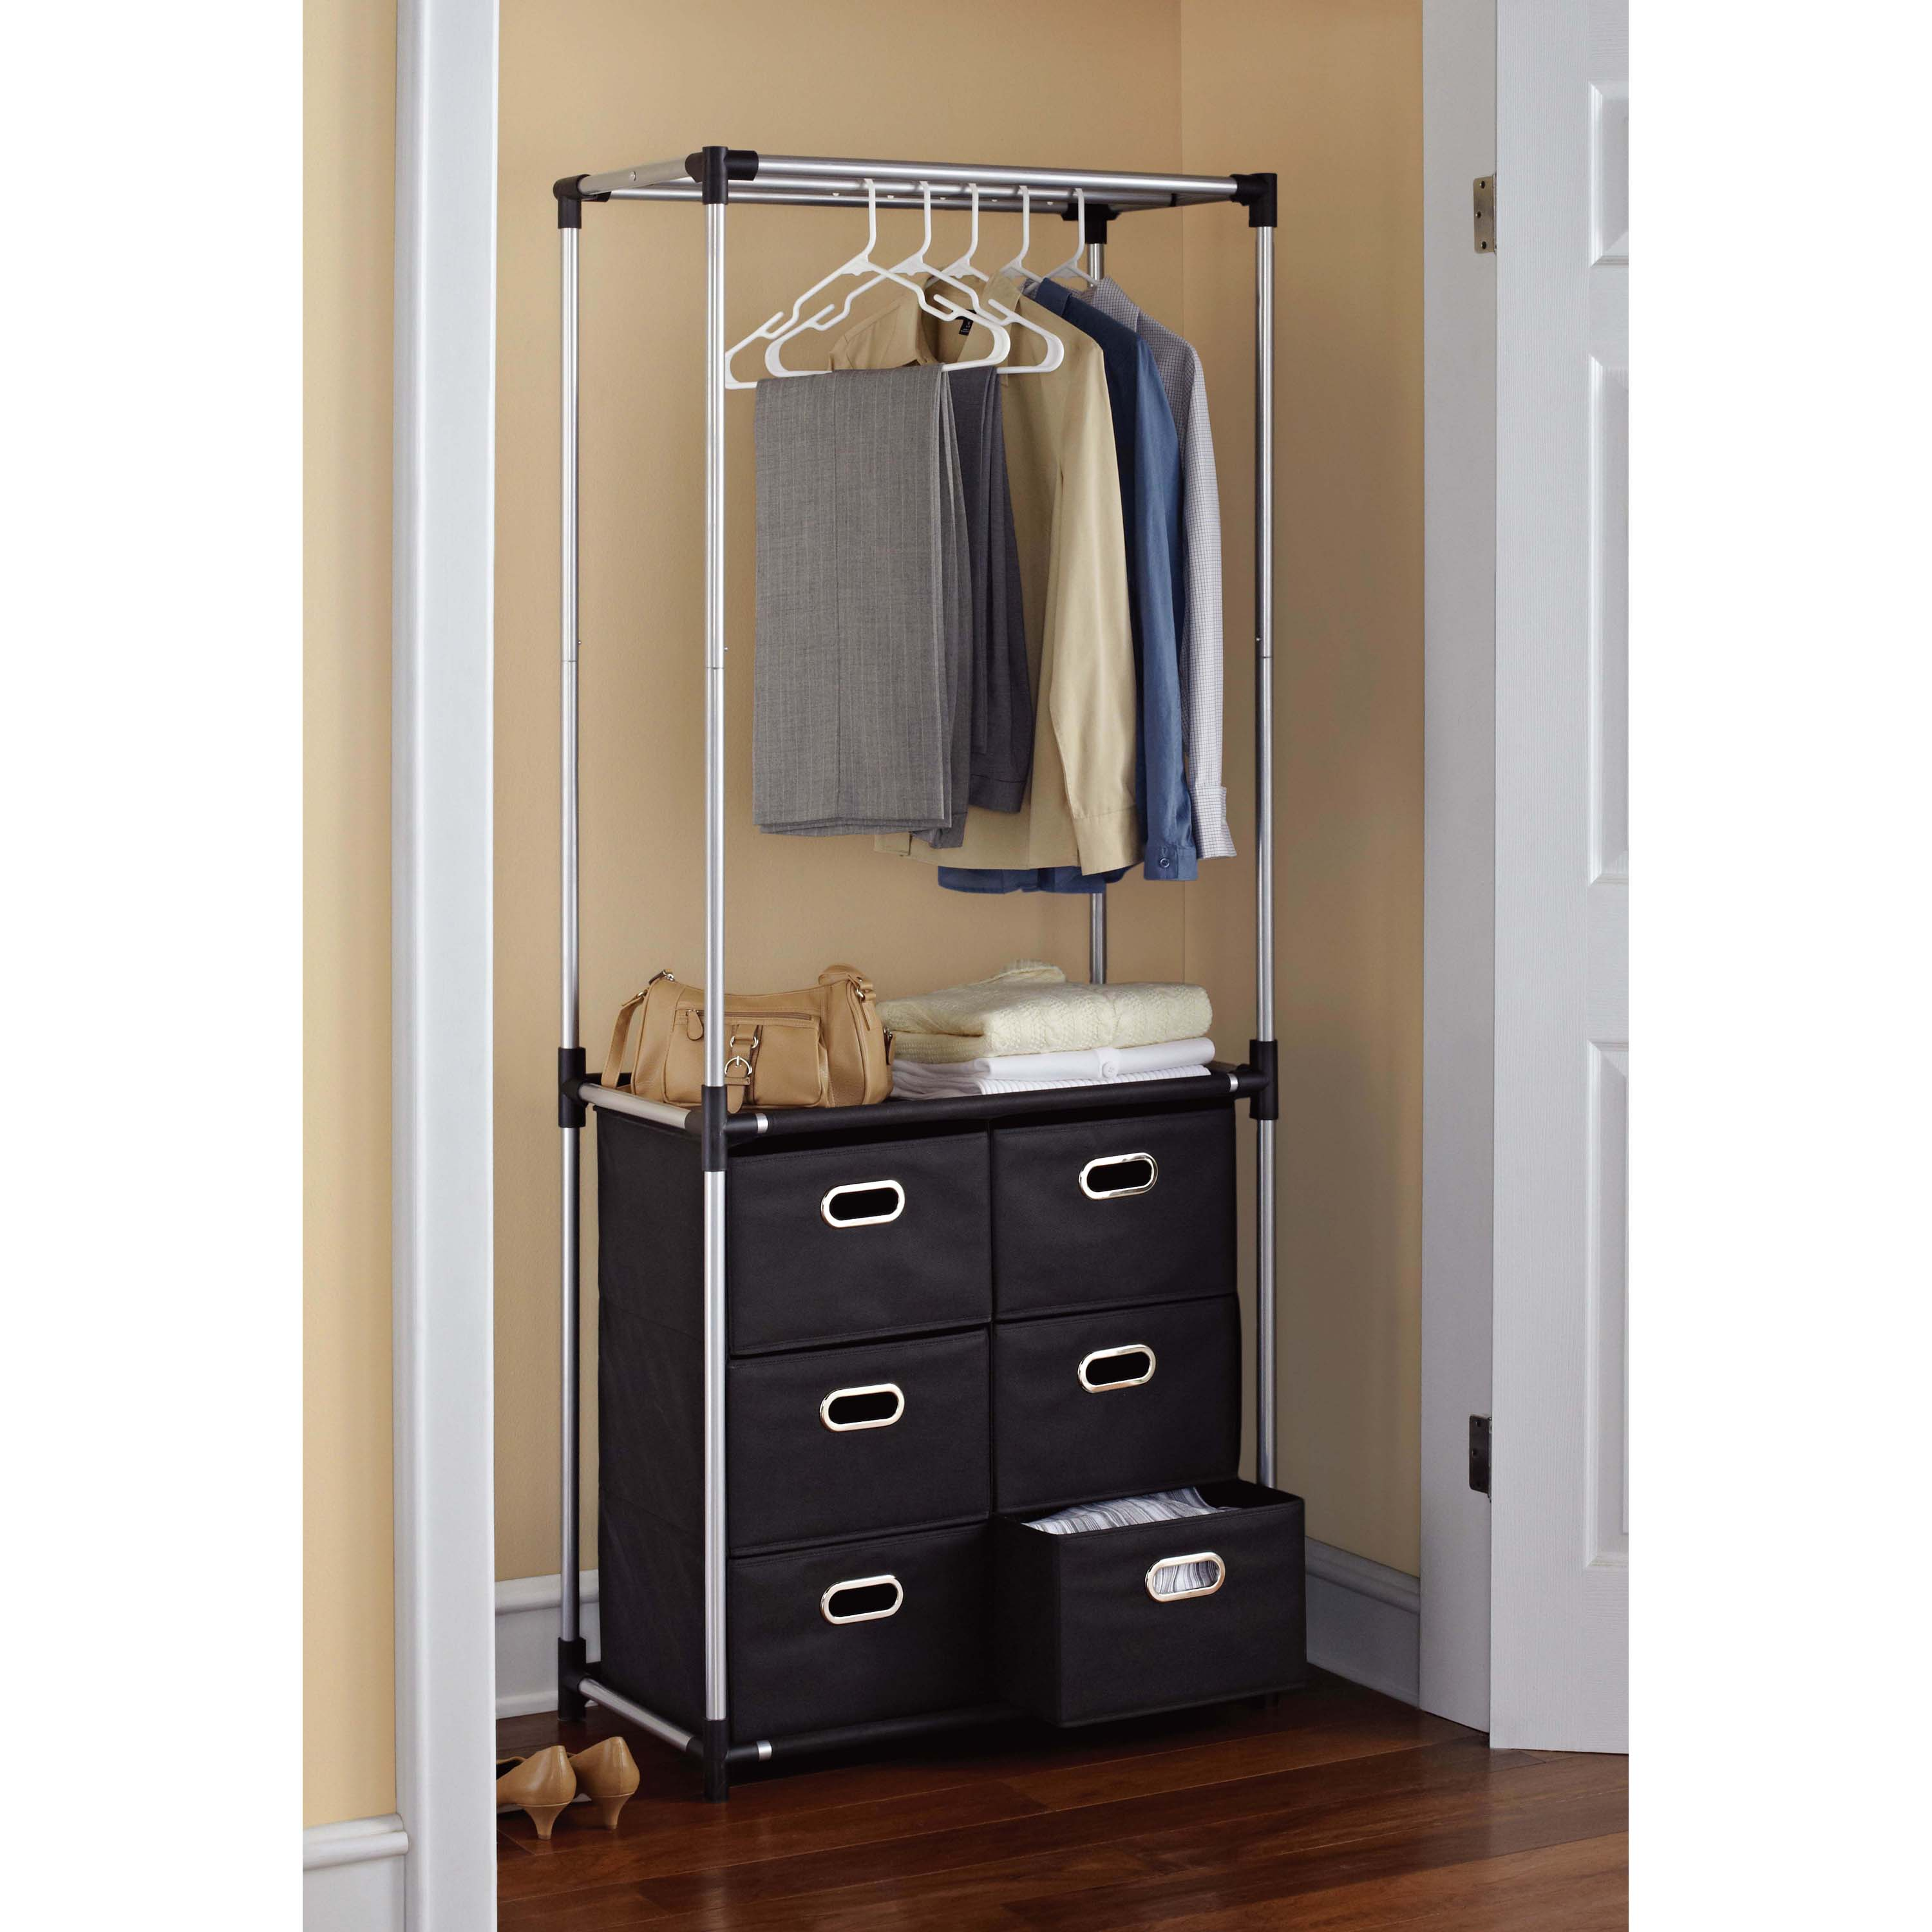 Mainstays 6 Drawer Closet Organizer, Black - Walmart.com